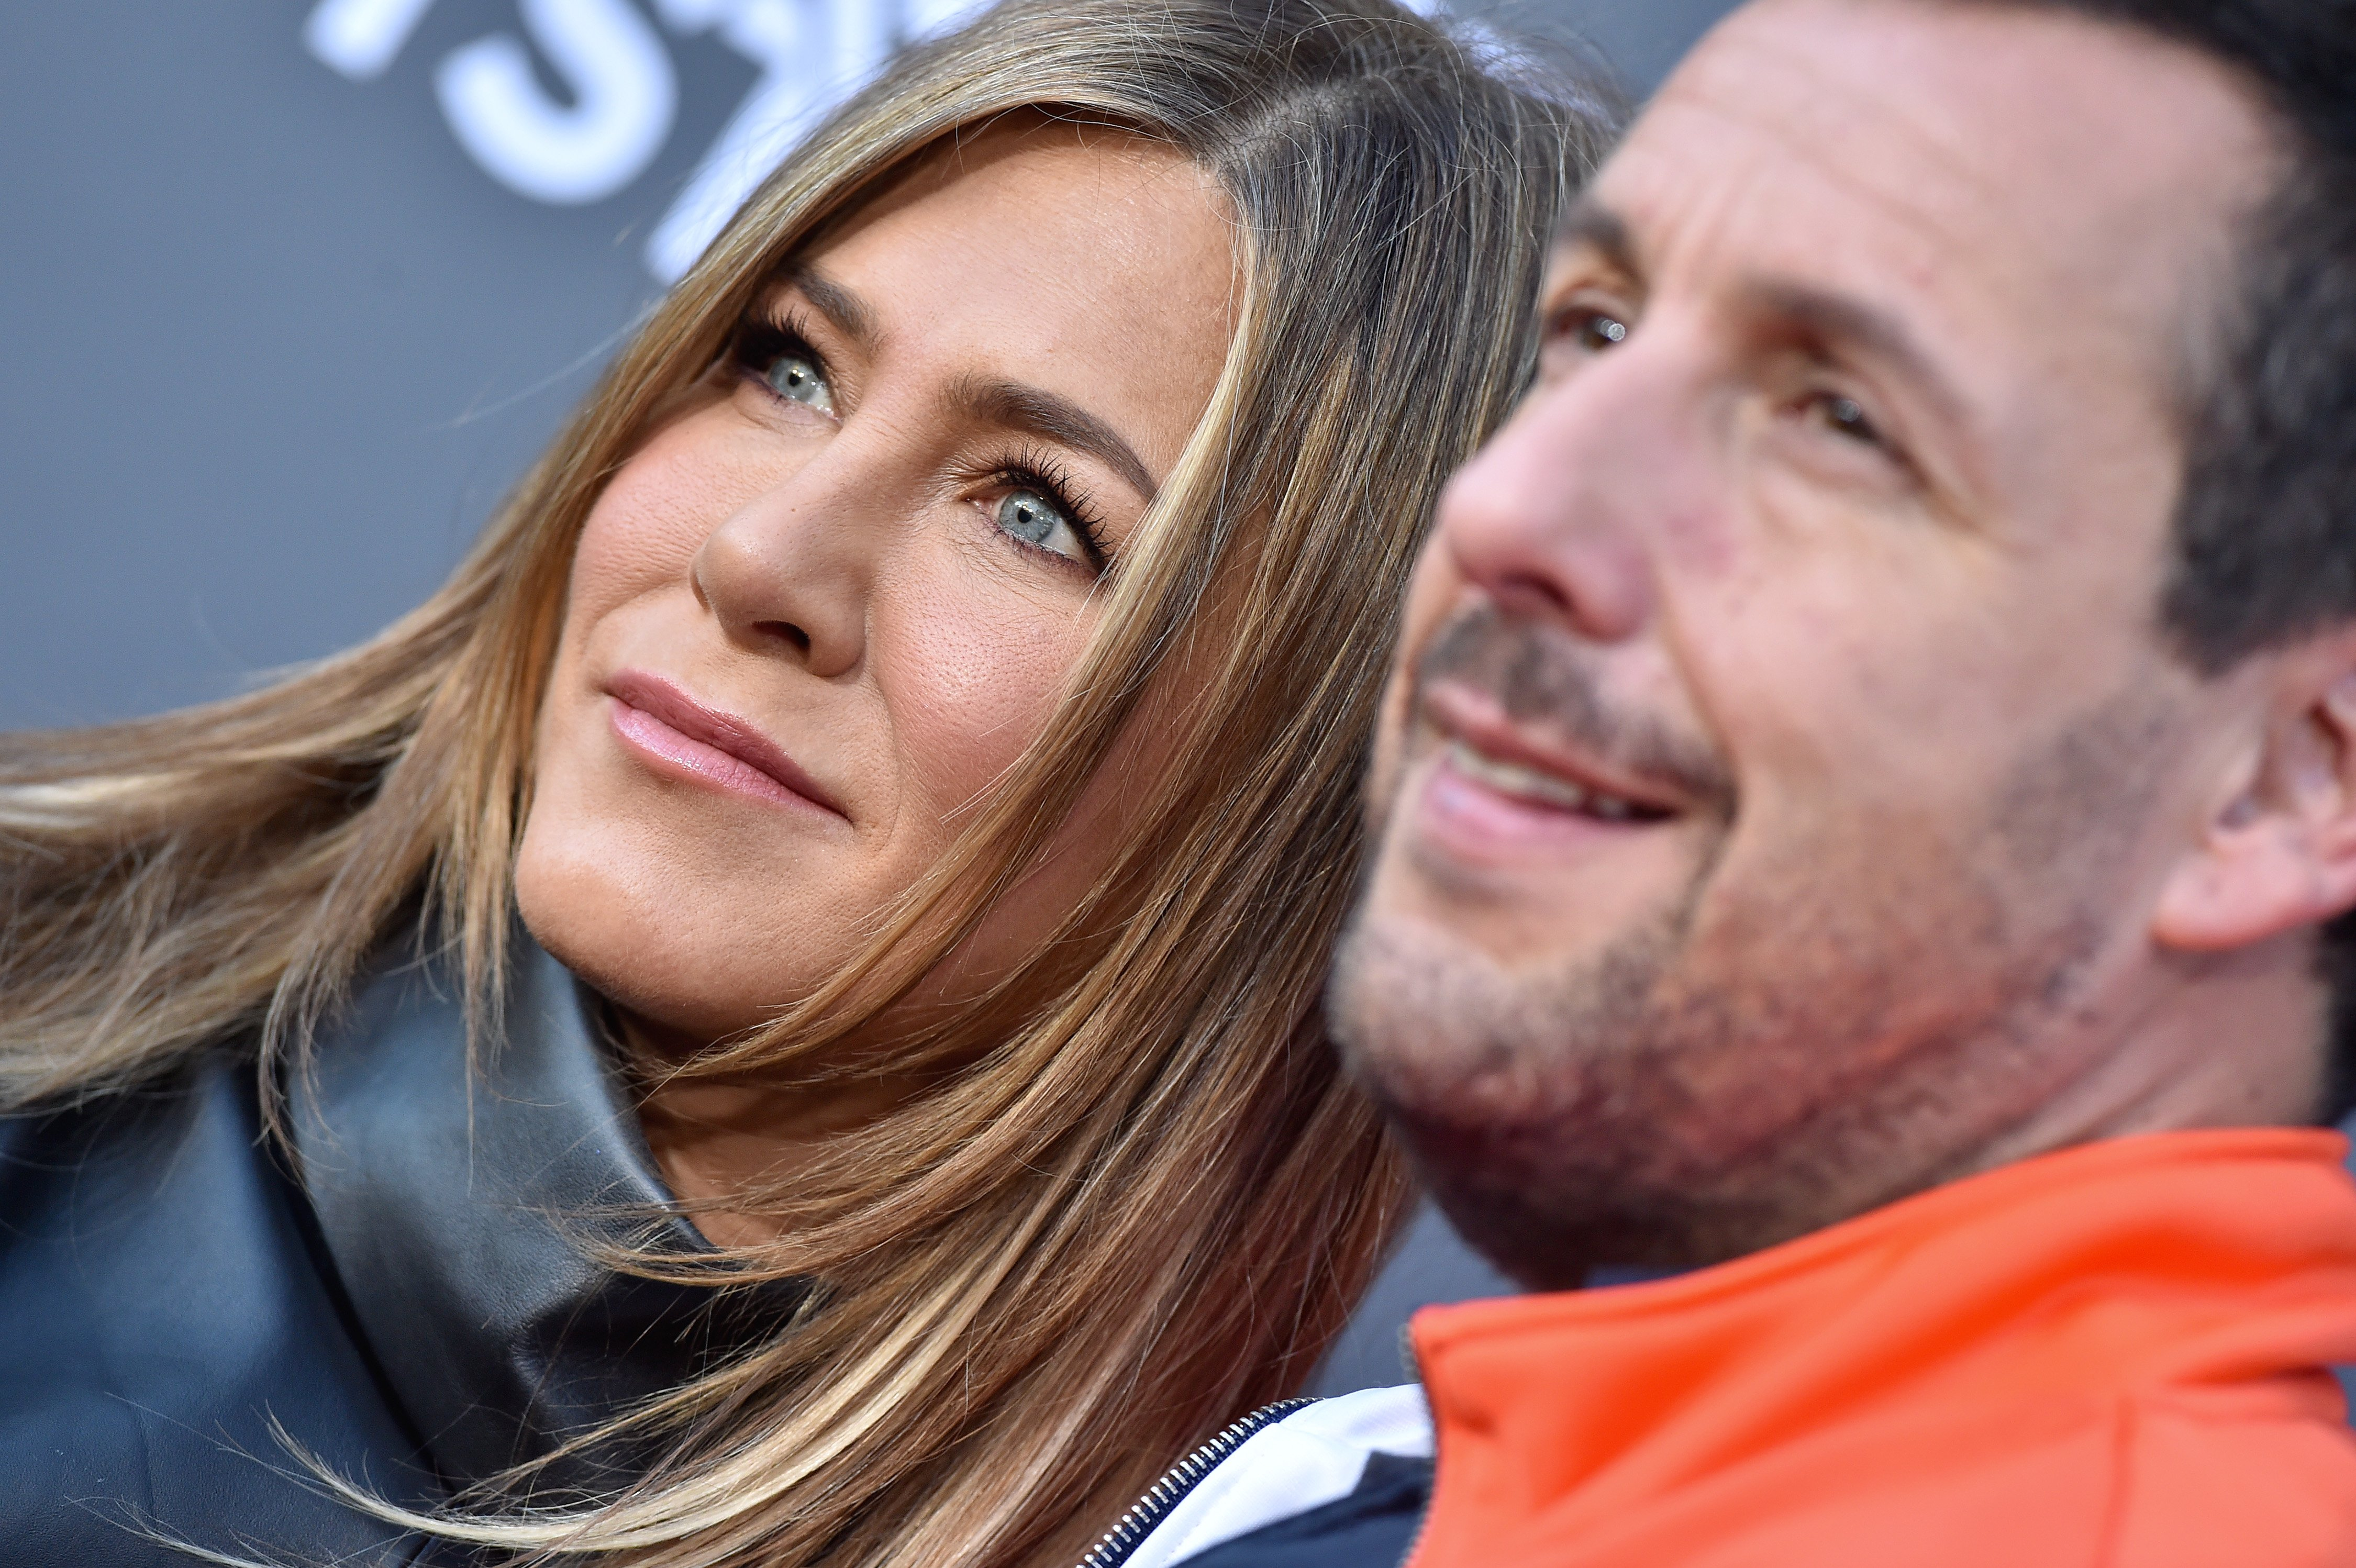 """Jennifer Aniston and Adam Sandler at the LA premiere of """"Murder Mystery,"""" 2019 